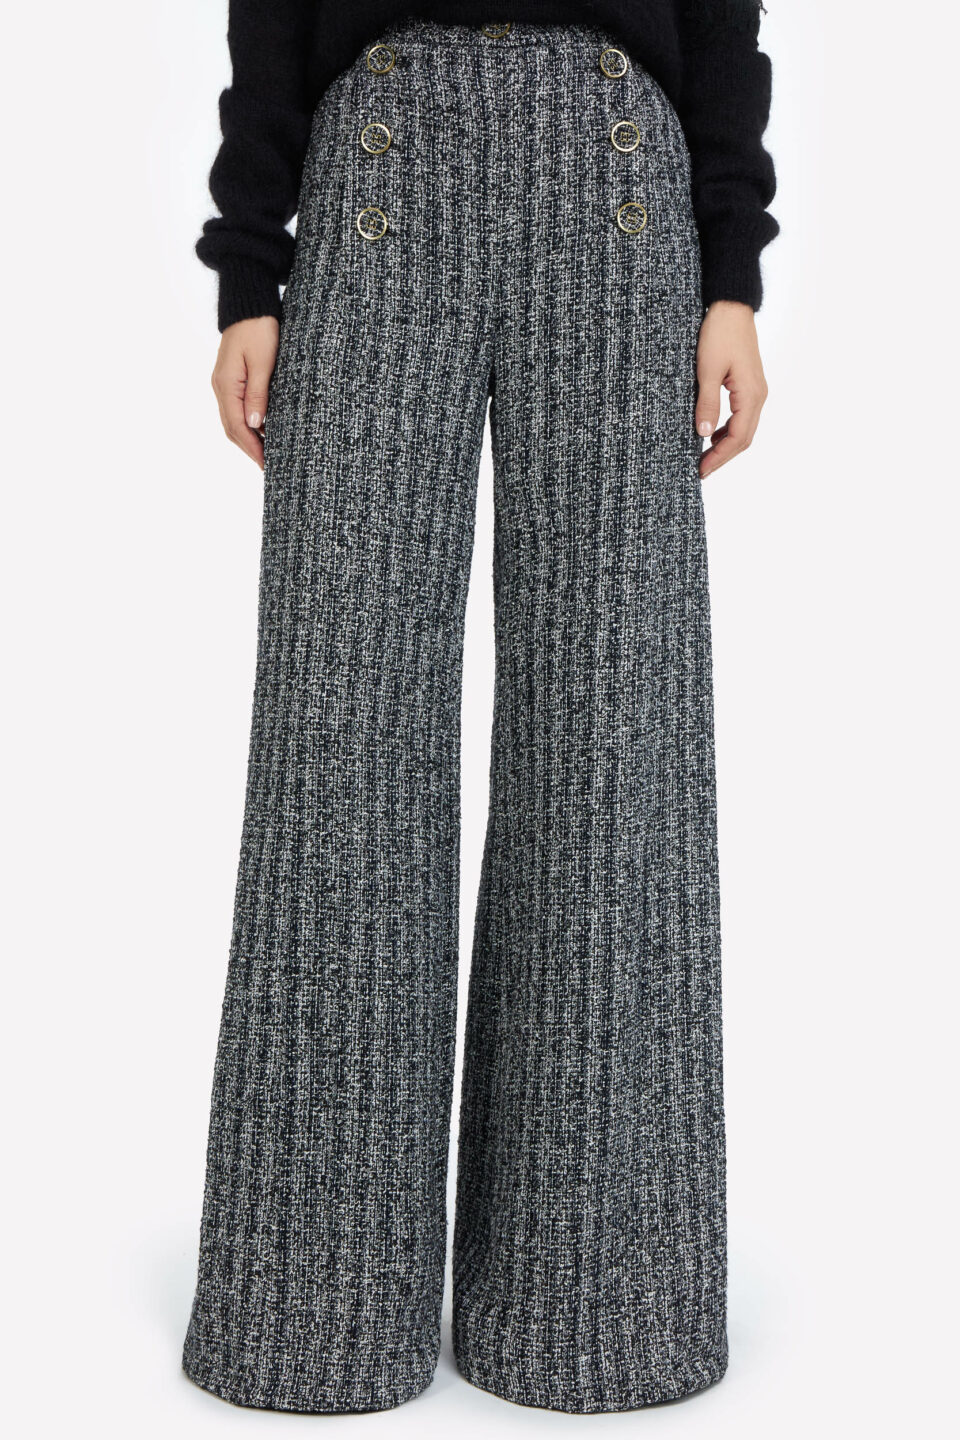 Addison FW2171 Grey Cotton-Blend Tweed Trousers with Button Detail